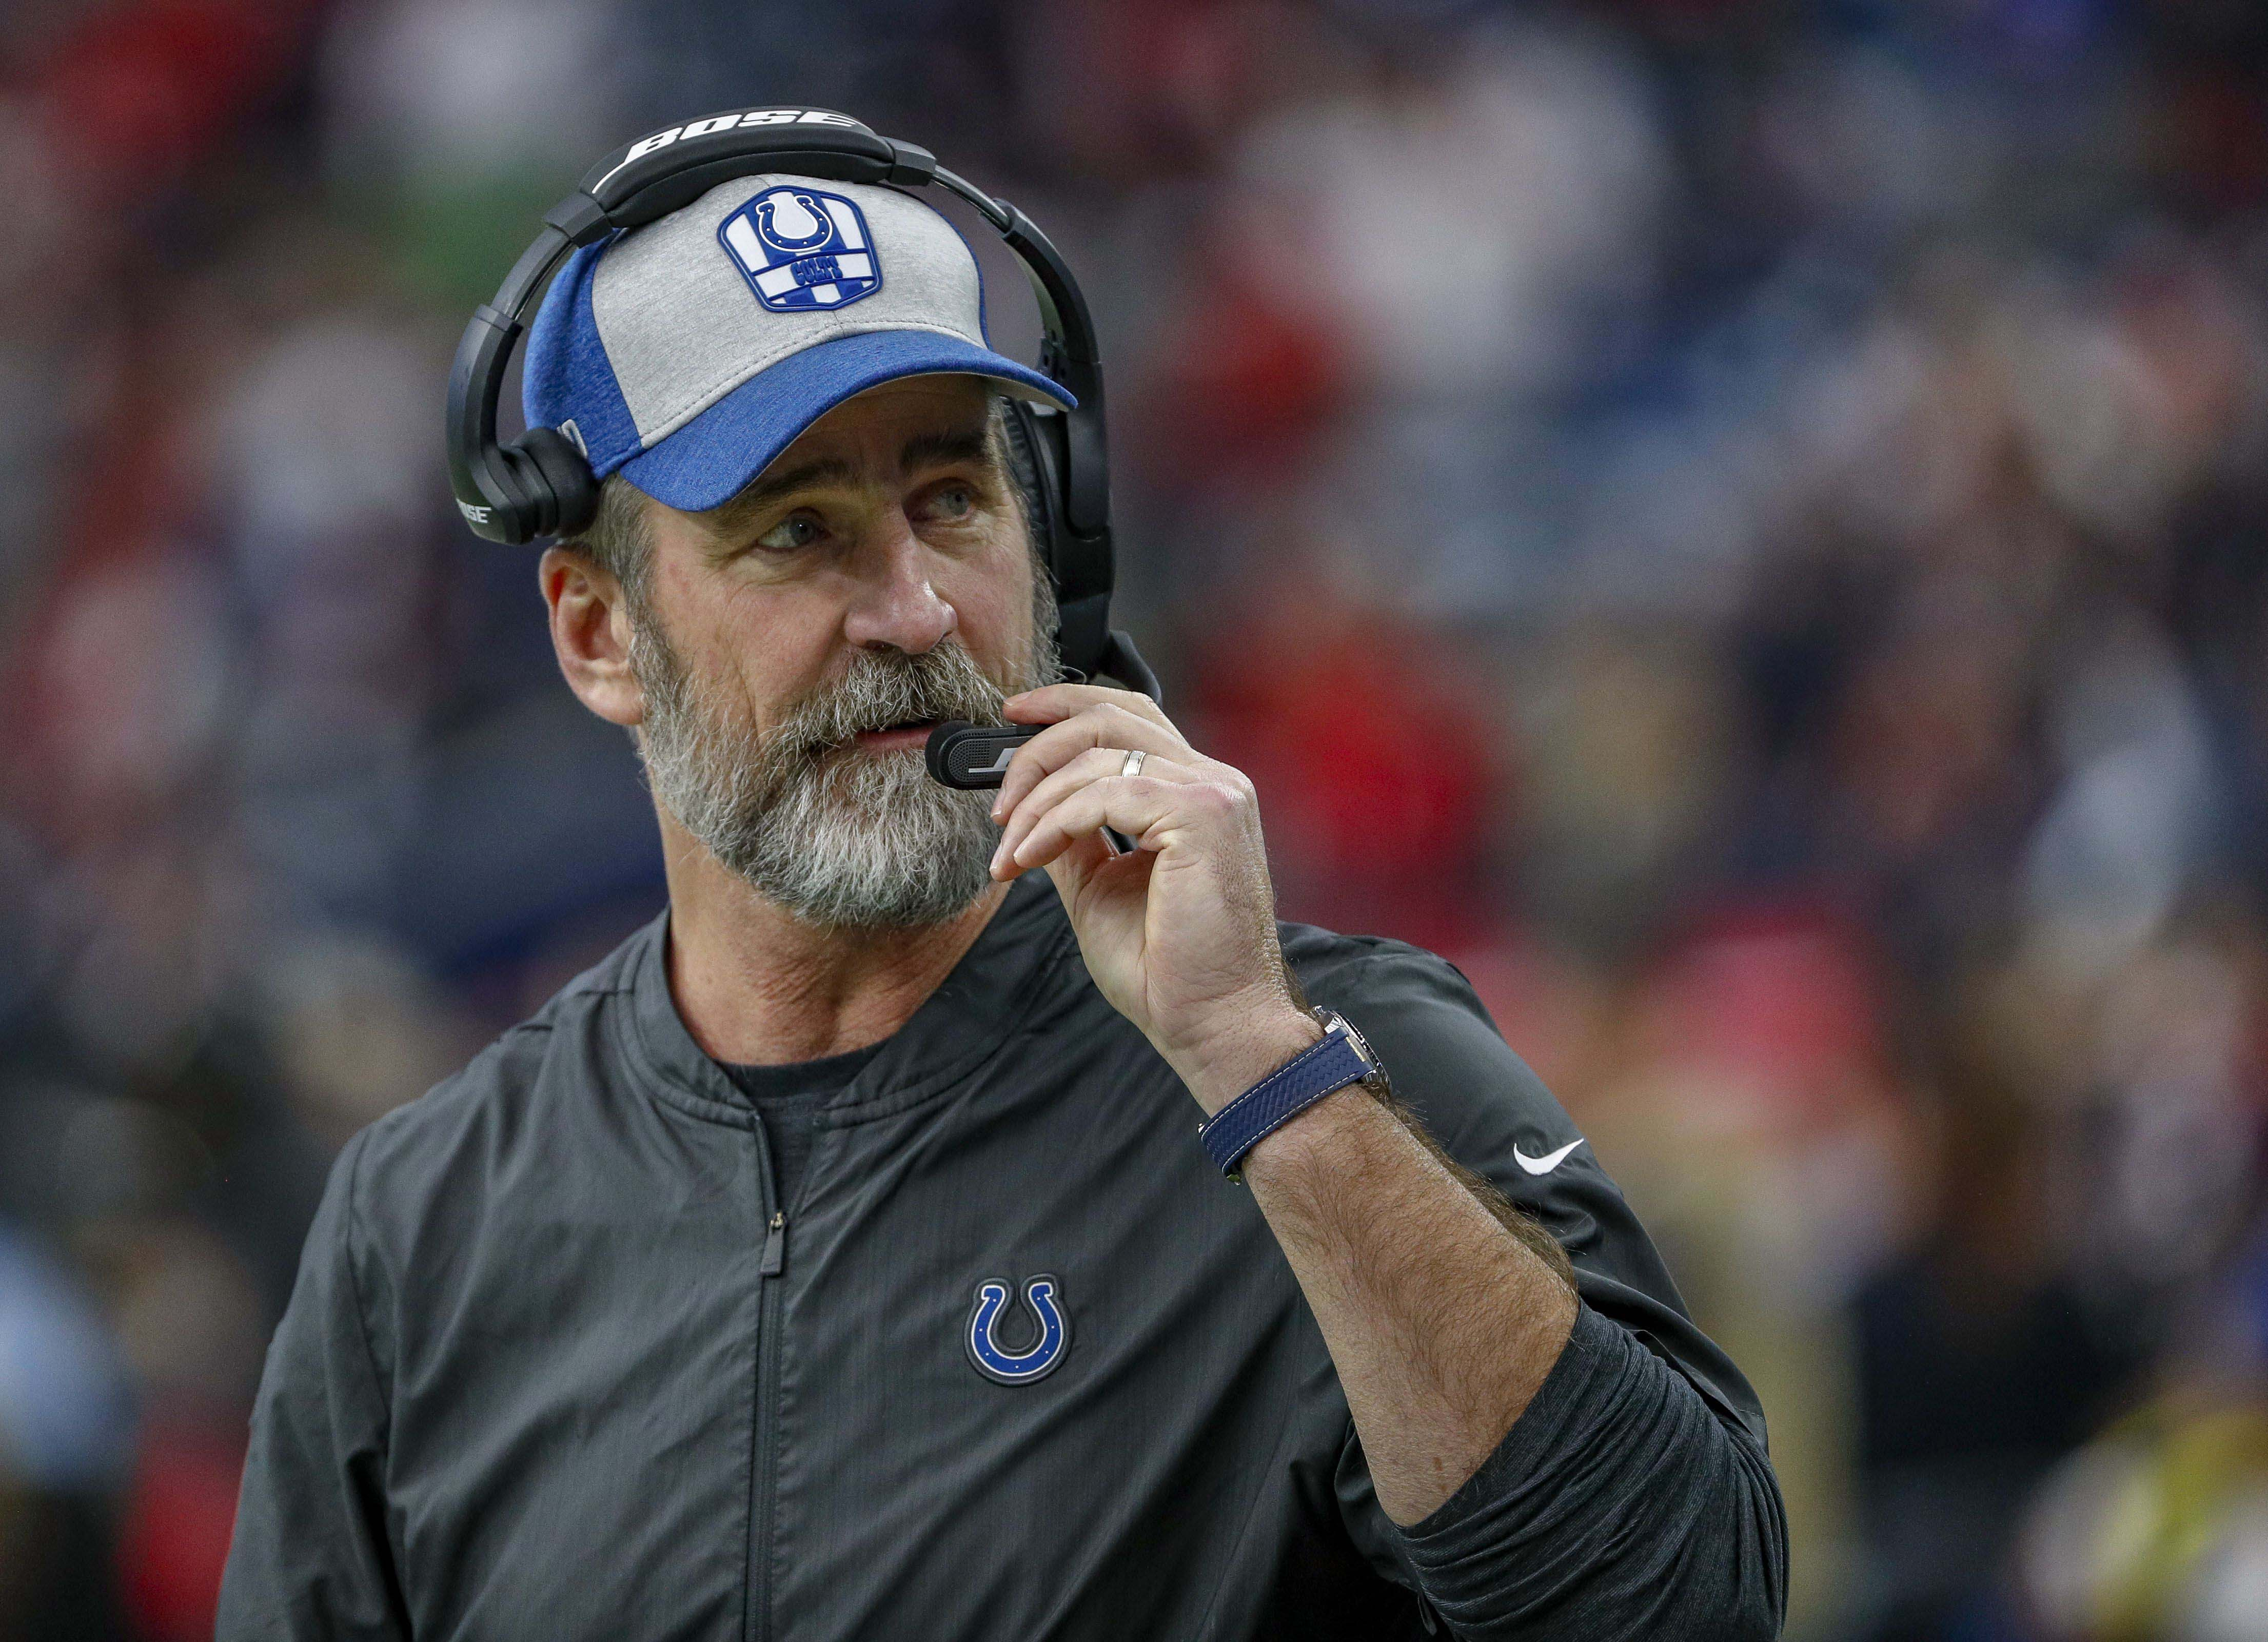 Ravens ready to redeem against Colts, Frank Reich